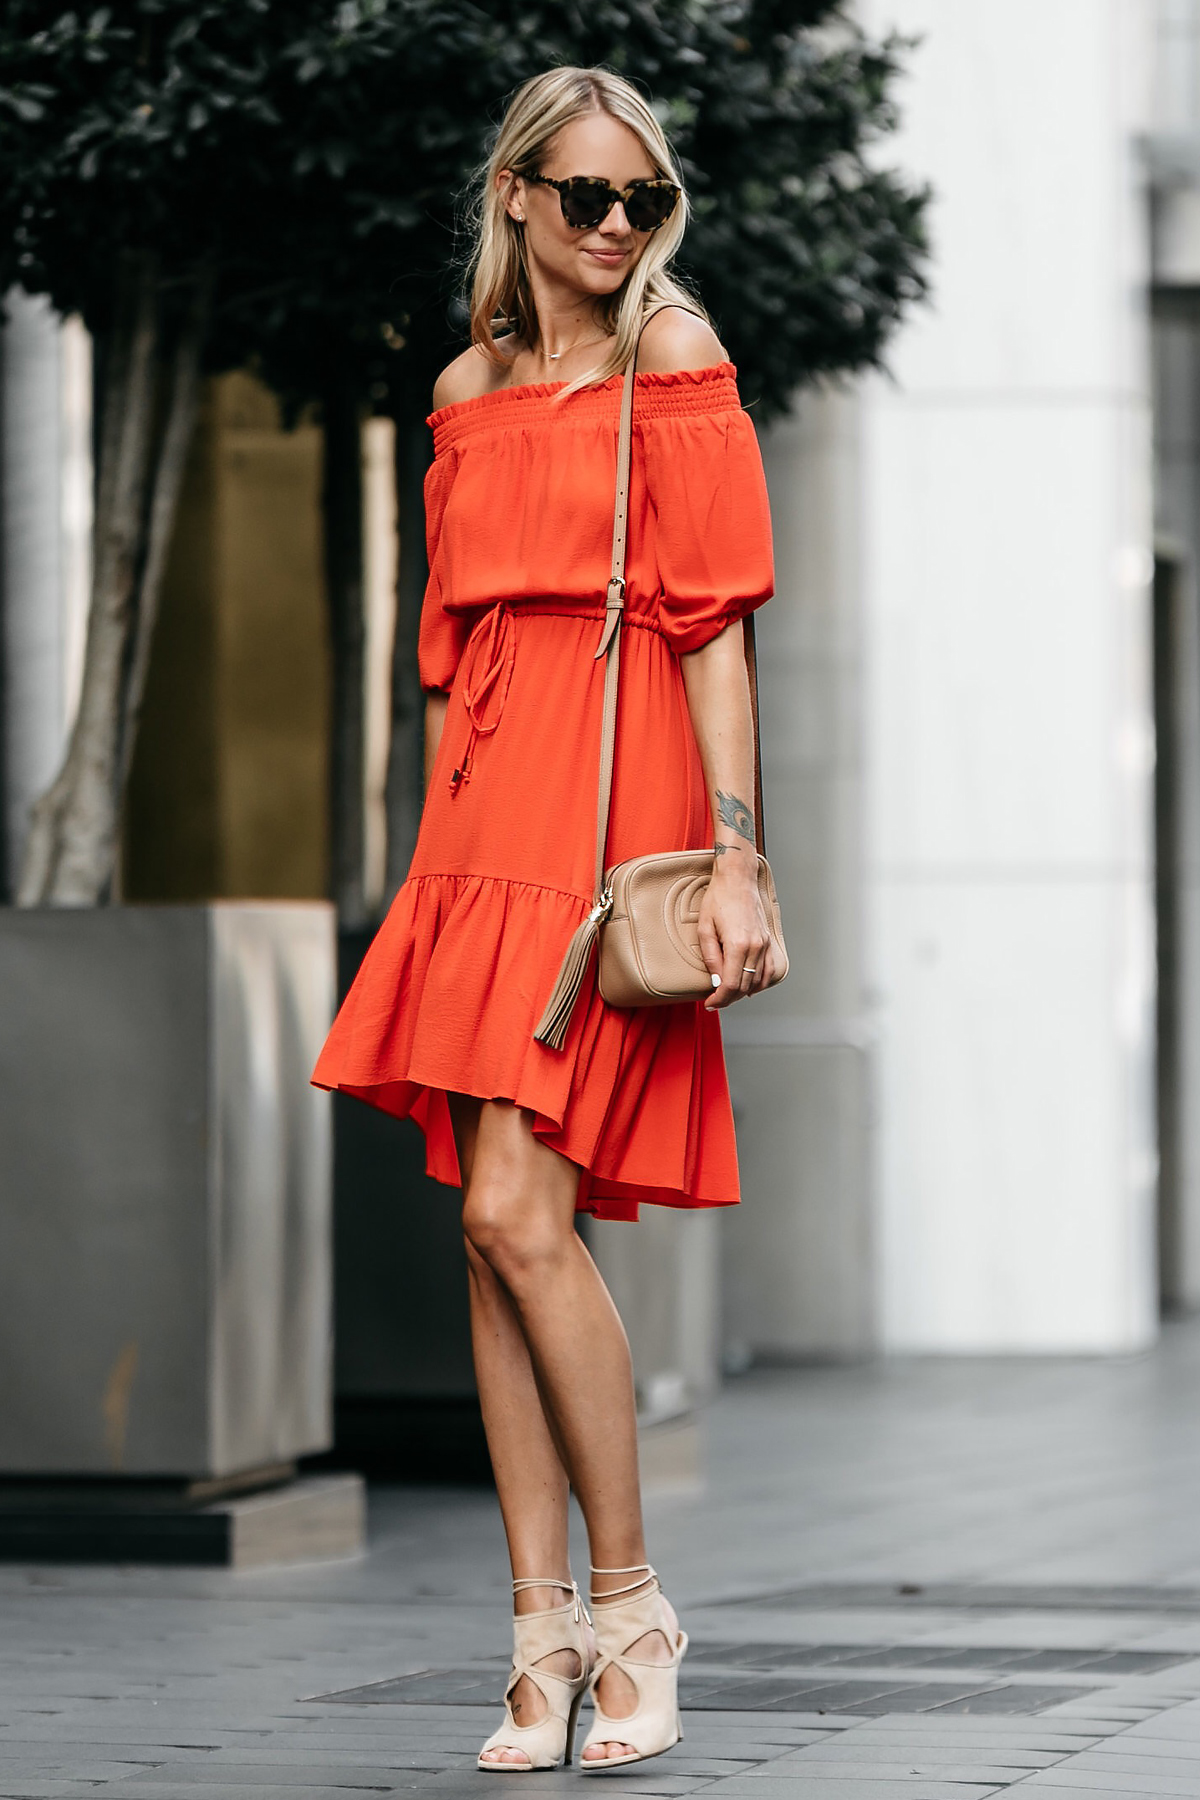 Blonde Woman Wearing Vince Camuto Red off-the-shoulder Dress